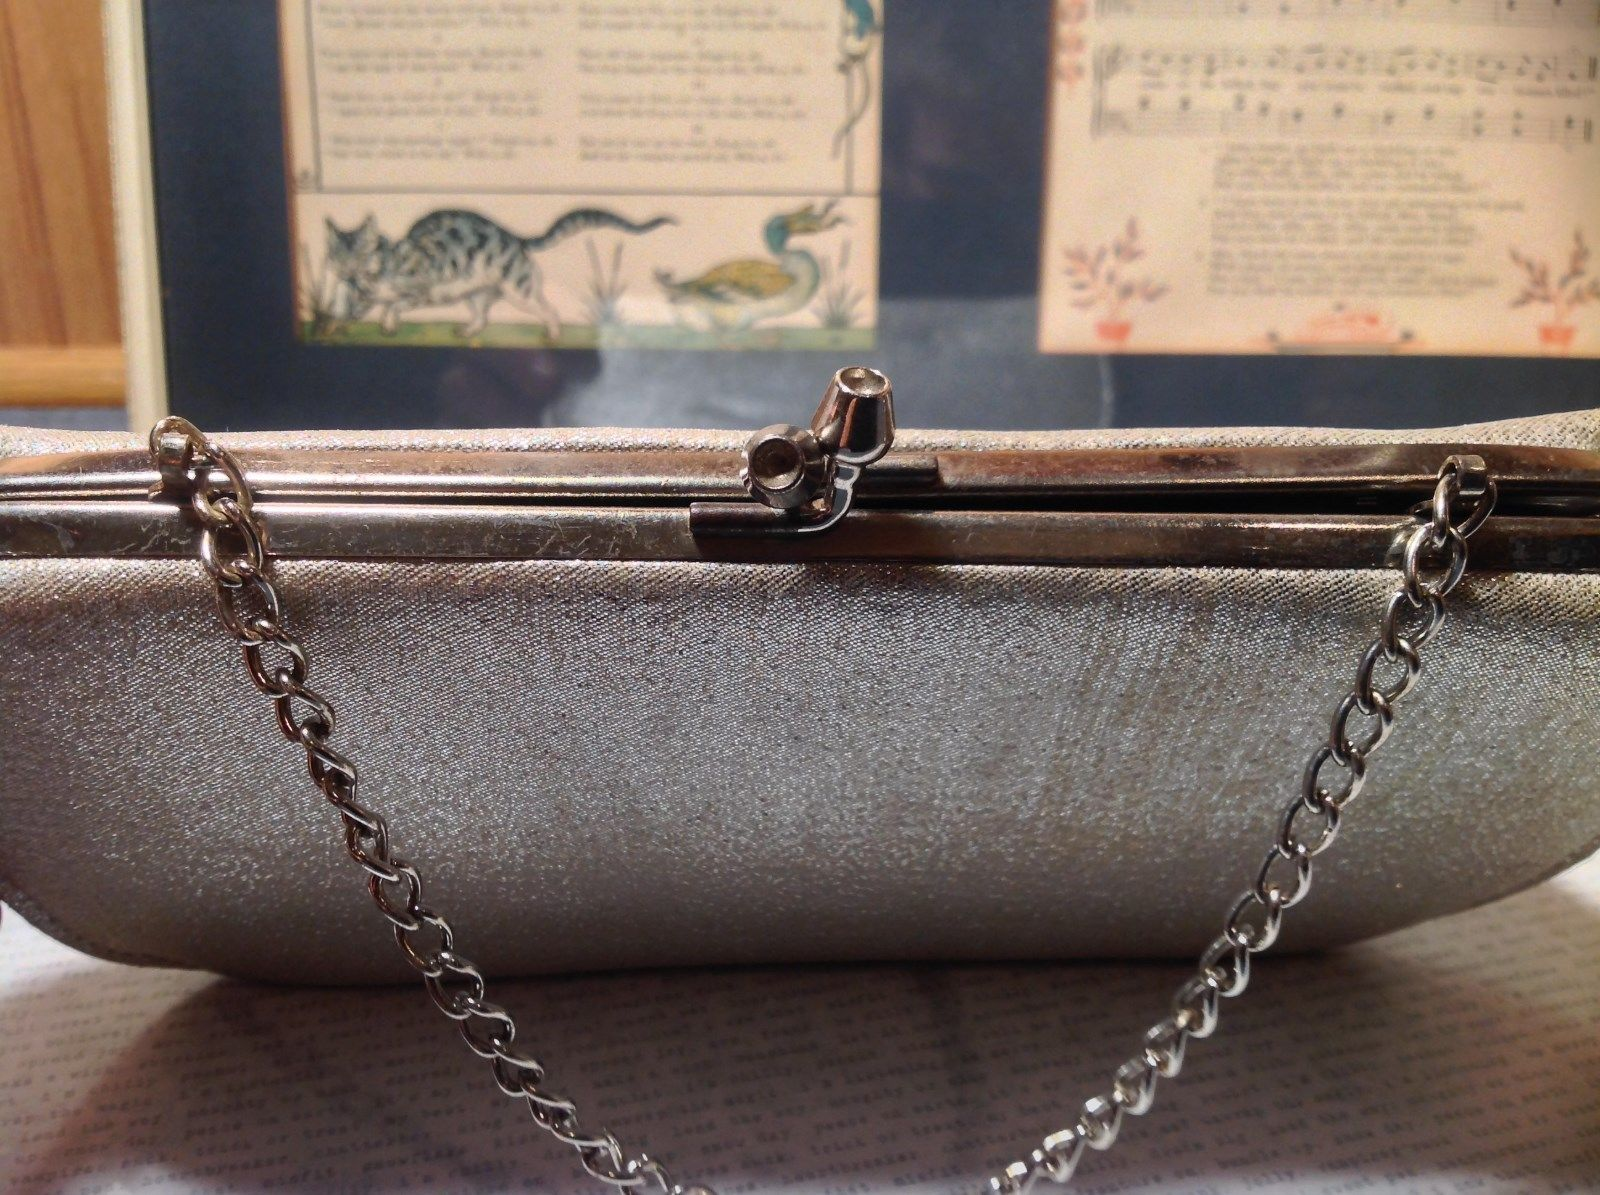 Silver Sparkly Clutch Bag with Silver Chain and Clasp